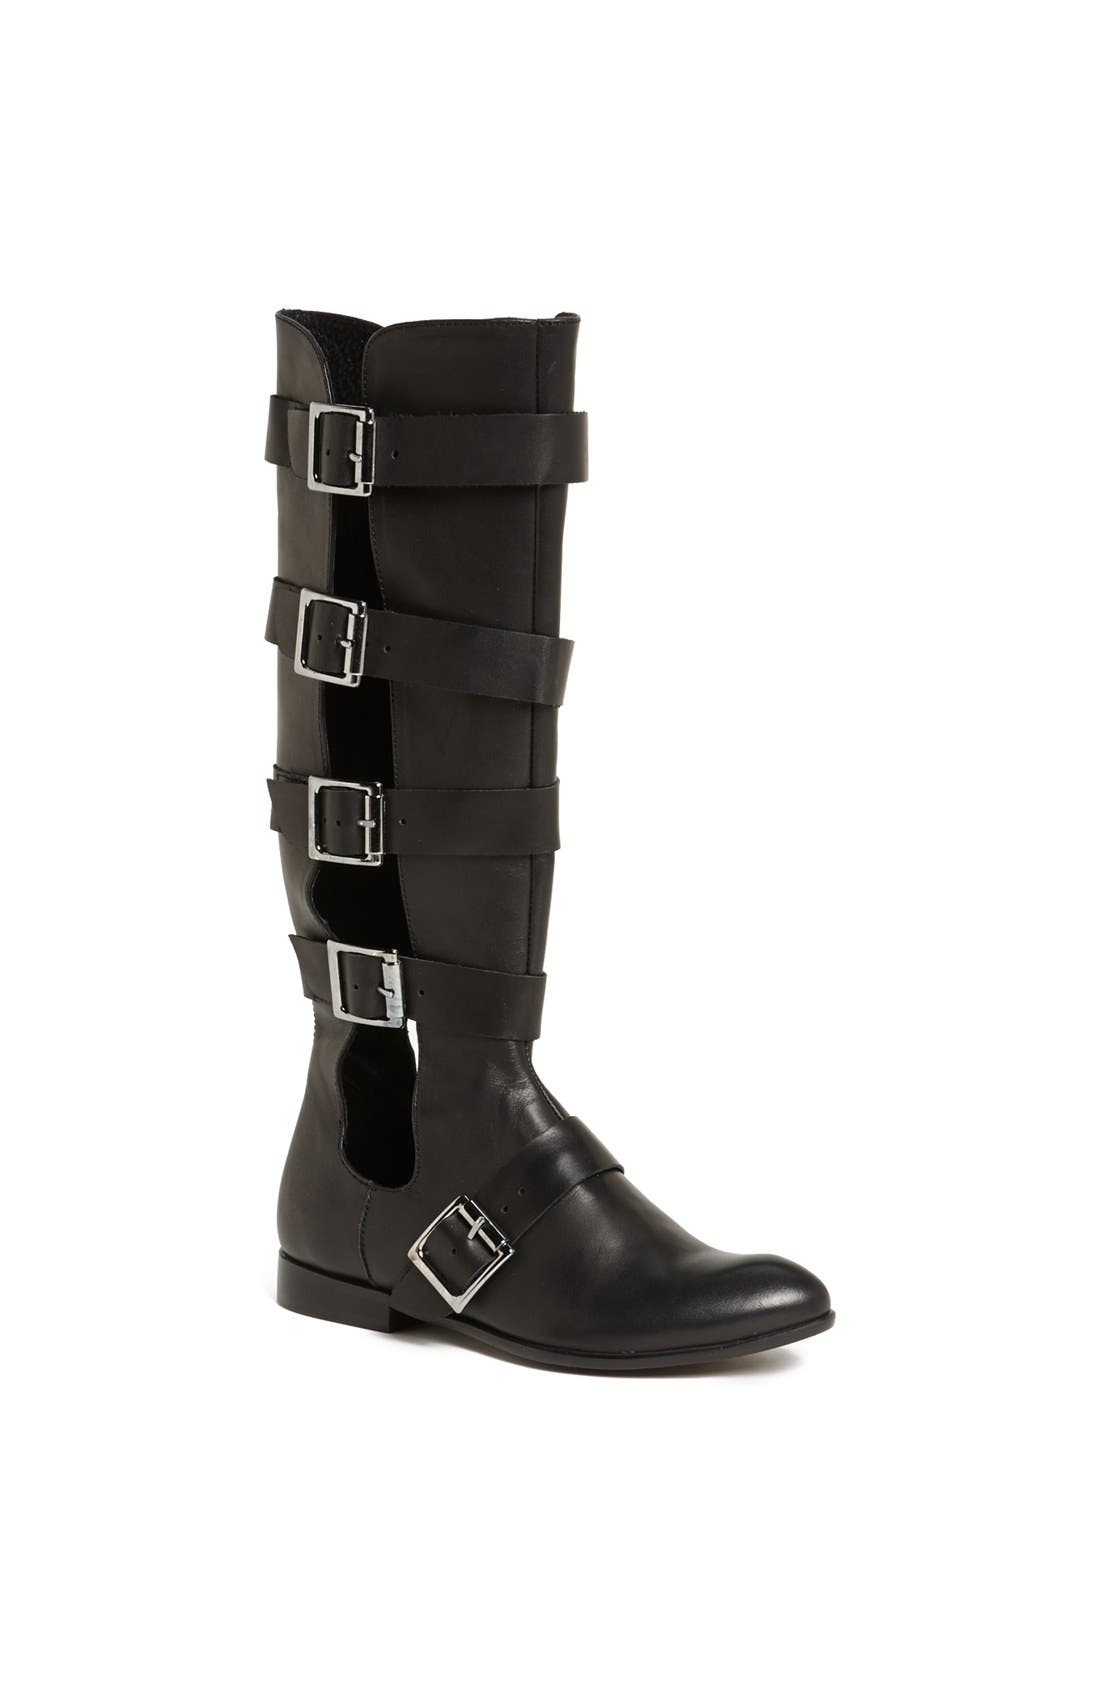 Alternate Image 1 Selected - Topshop 'Demon' Tall Boot